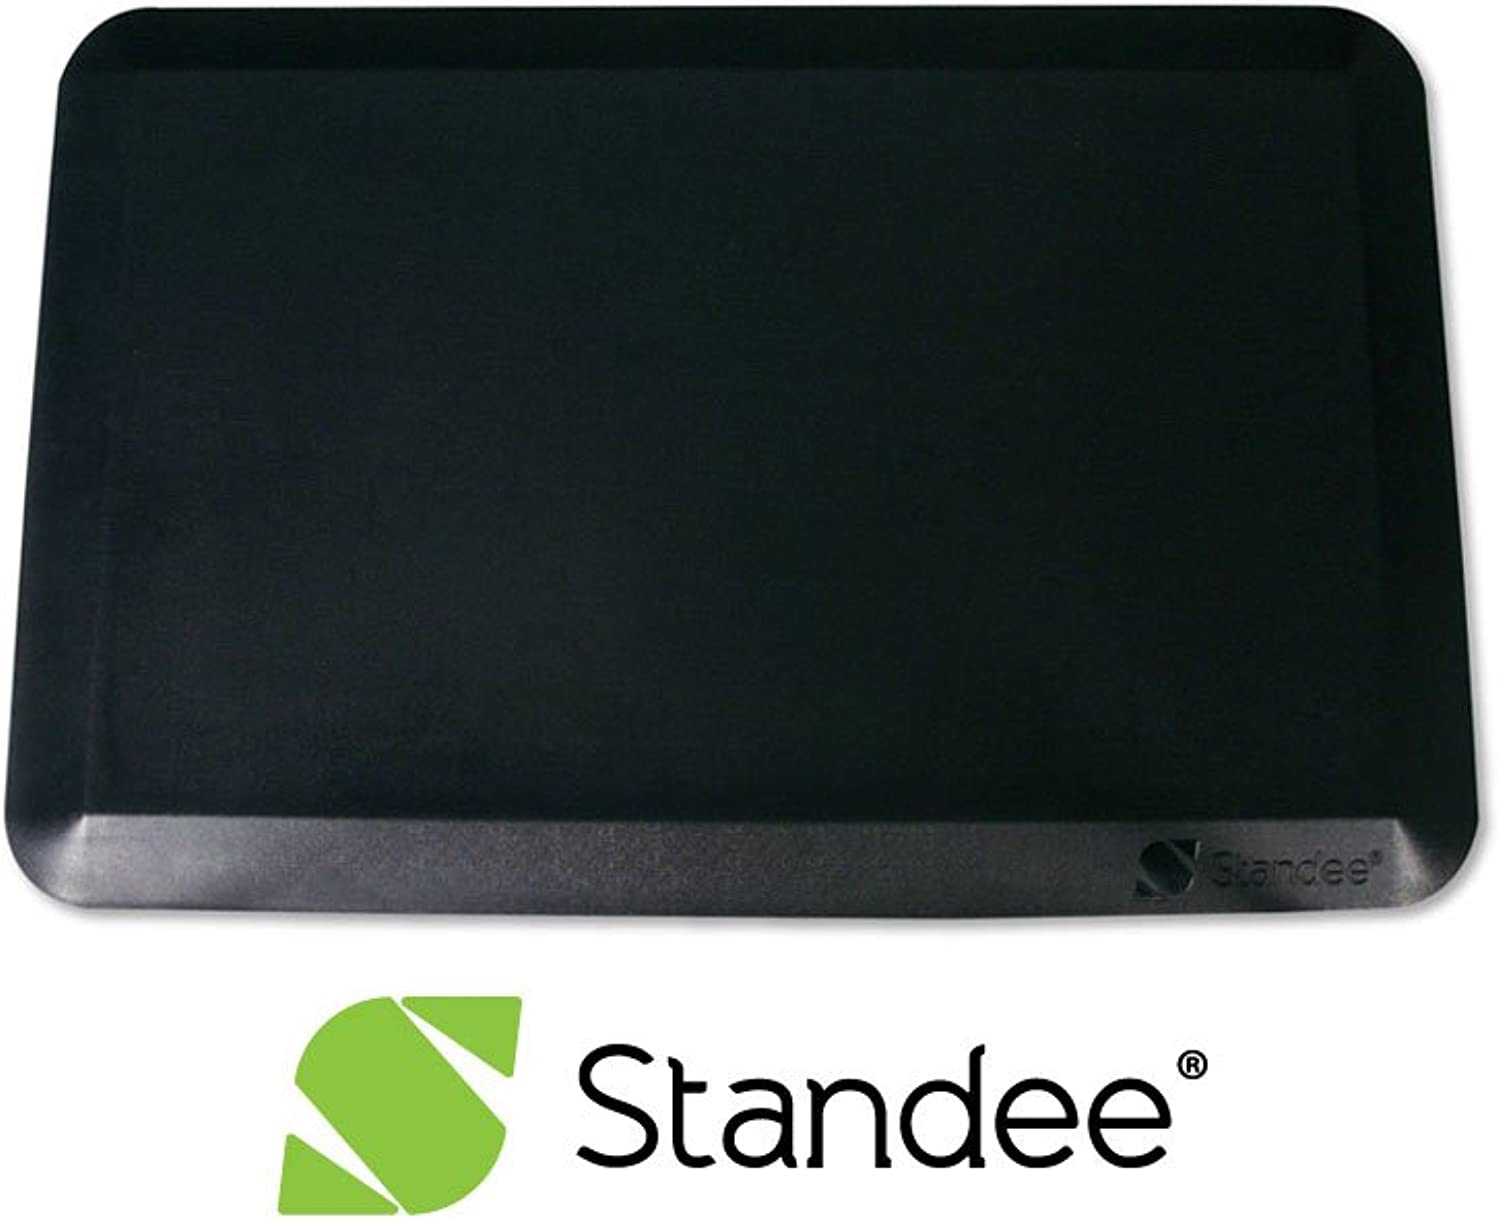 Standee Anti Fatigue Standing Mat, Extra Thick for Comfort, 20 x 30 x 7 8 in. - Designed for Office and Kitchen, Black